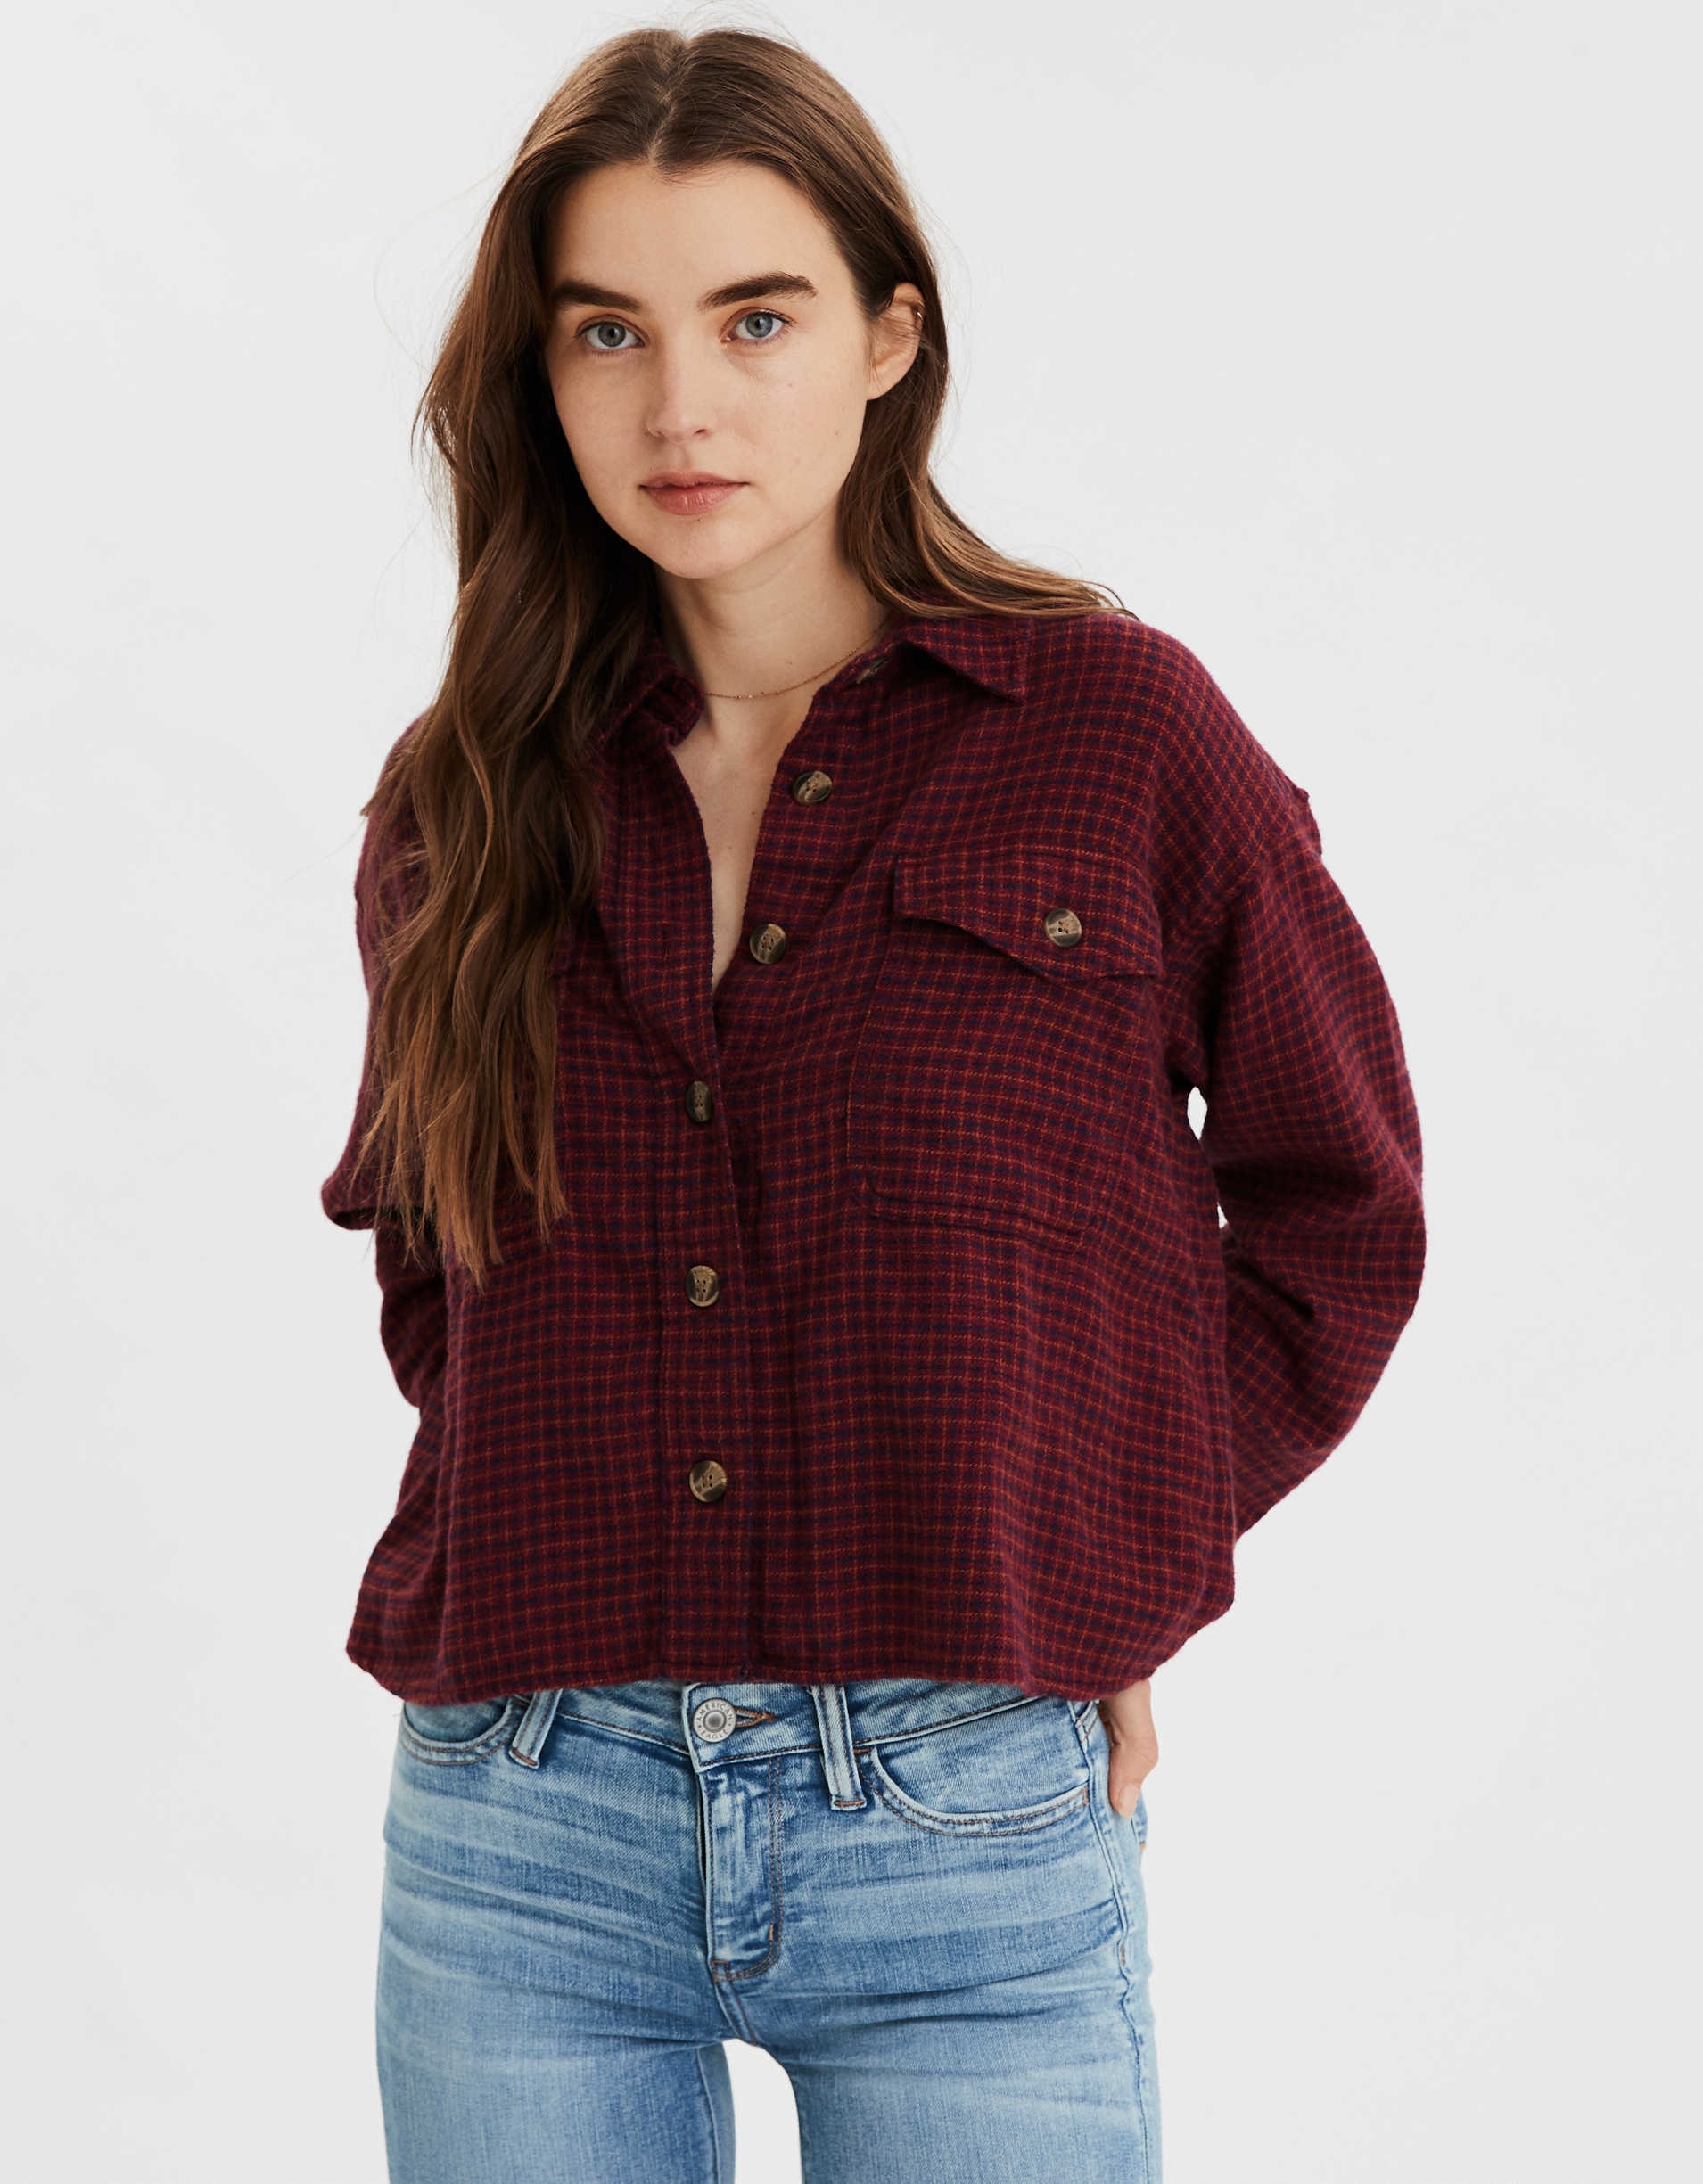 AE Plaid Cropped Button Up Shirt